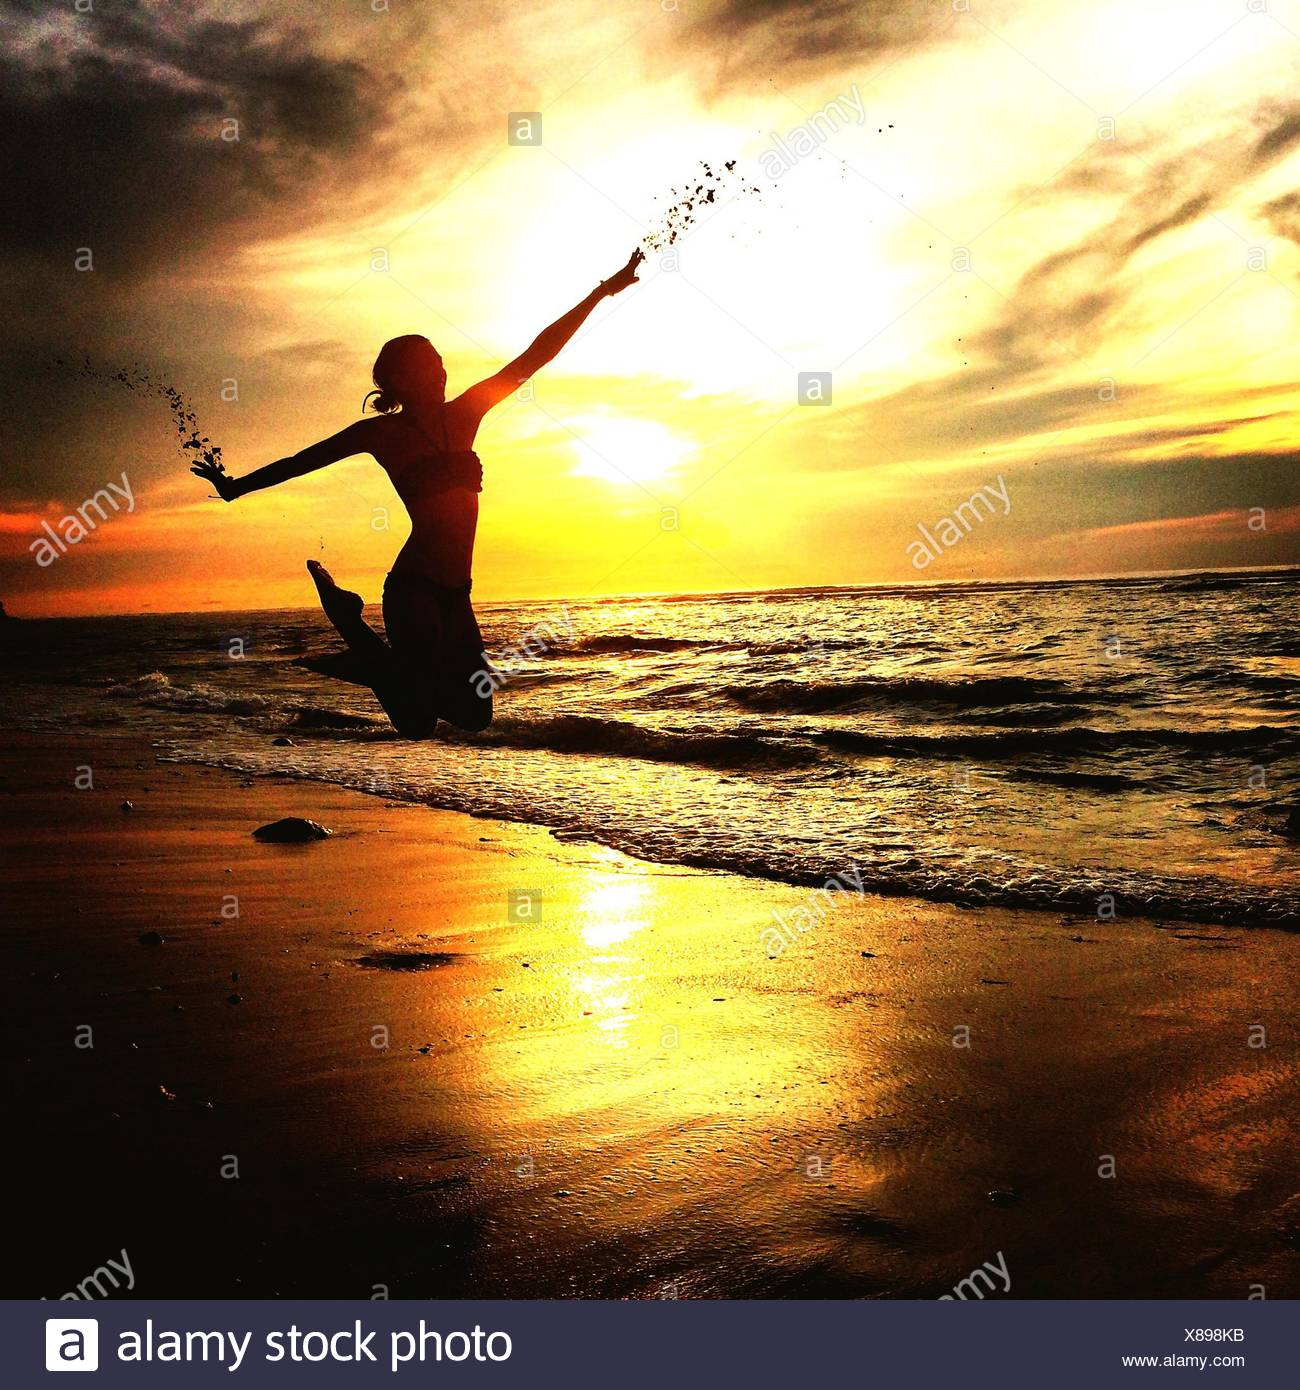 Woman Jumping On Sandy Beach During Sunset - Stock Image